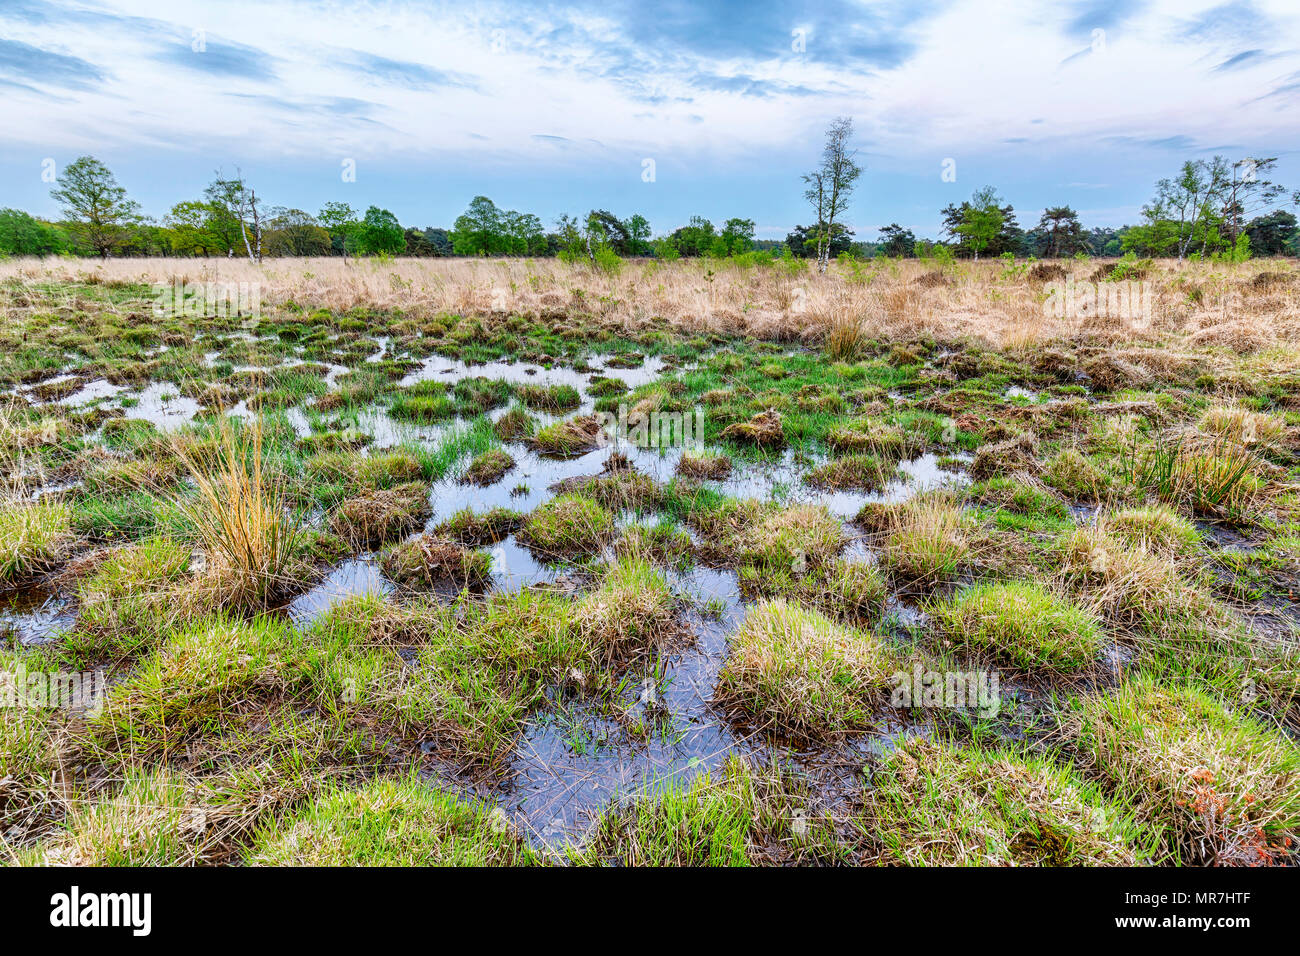 Wetlands and moorland on the national park Groote Zand near Hooghalen Drenthe during sunset. - Stock Image